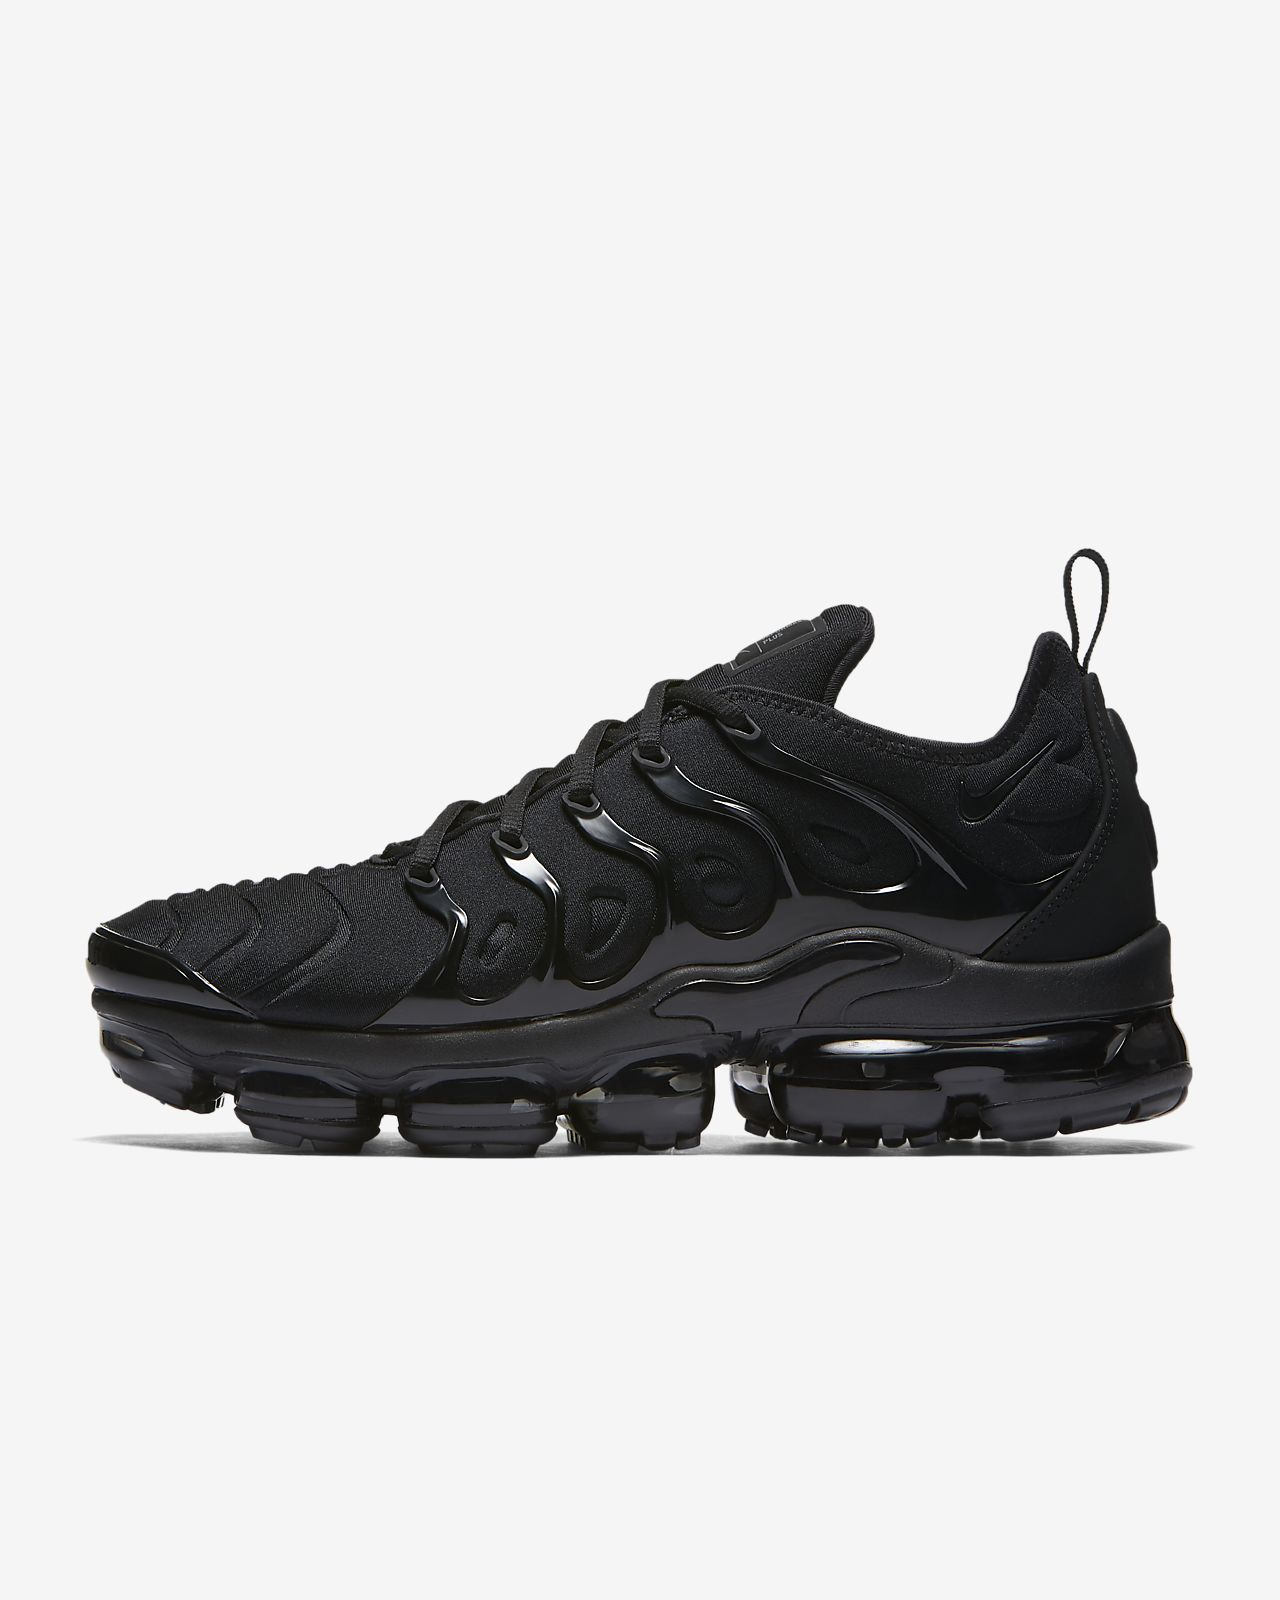 87f043ff39 Nike Air VaporMax Plus Men's Shoe. Nike.com